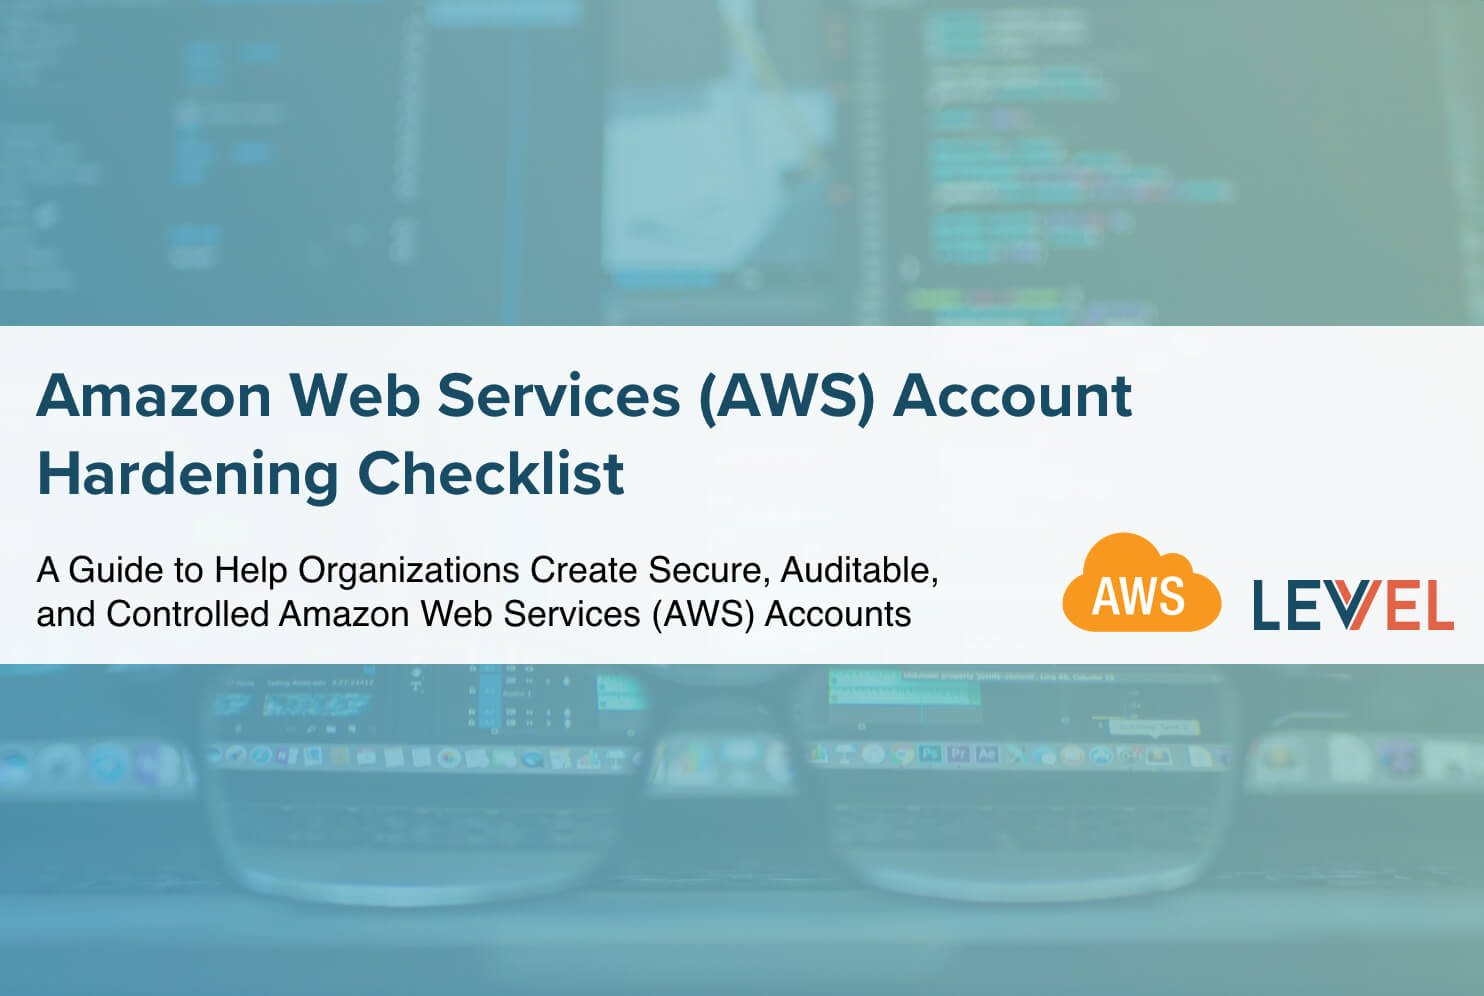 Amazon Web Services (AWS) Account Hardening Checklist